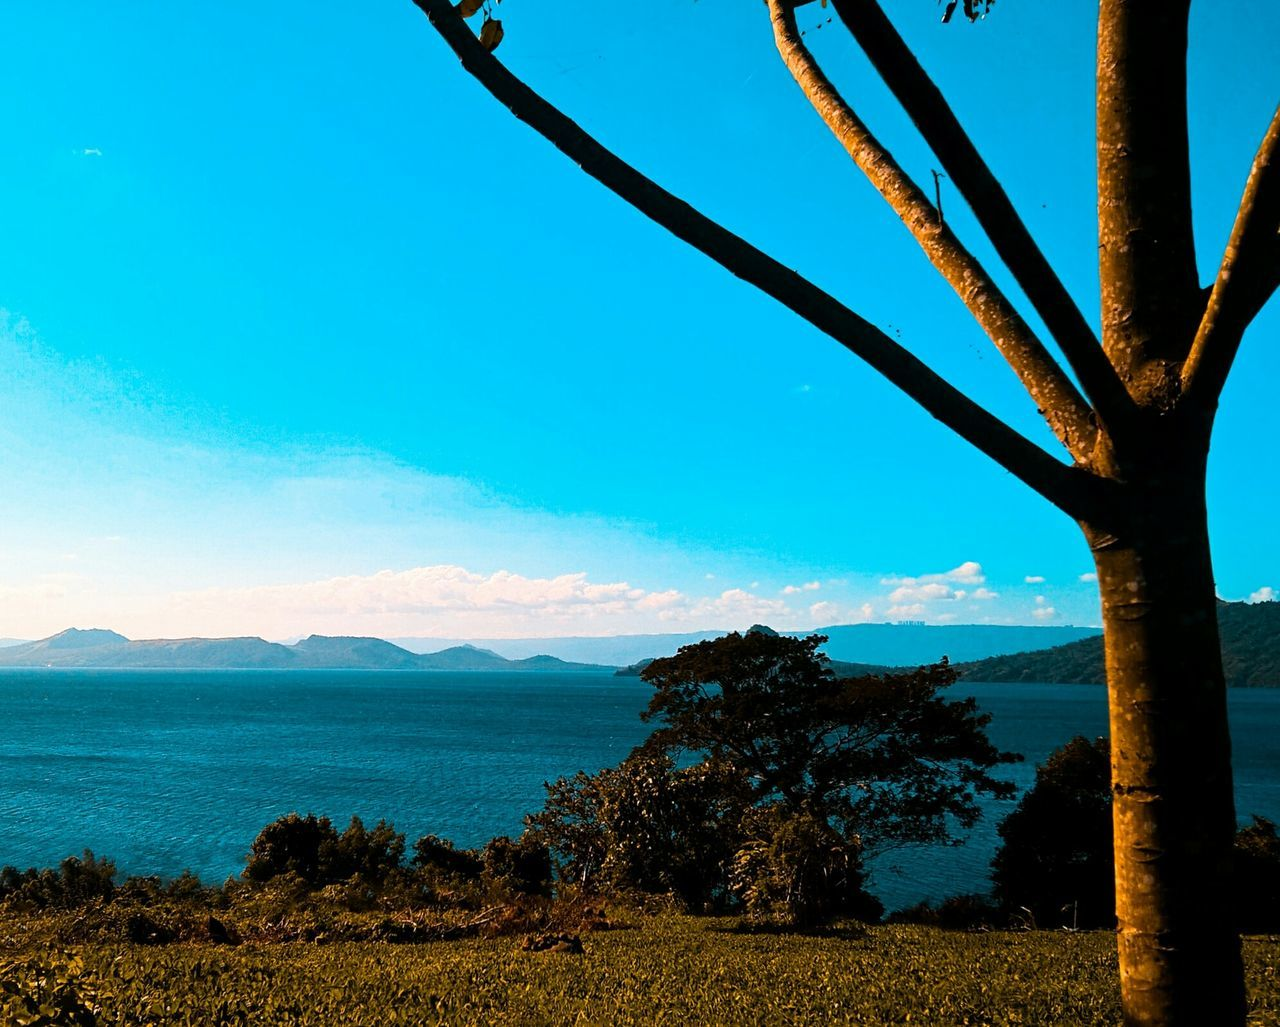 Taal Lake in the Background First Eyeem Photo Taal Volcano TaalLake  Orangeandteal Lumia640xl Nature Naturebeauty PhonePhotography EyeEm Best Shots Eyeem Philippines Neighborhood Map in Balete, Batangas Philippines EyeEmNewHere